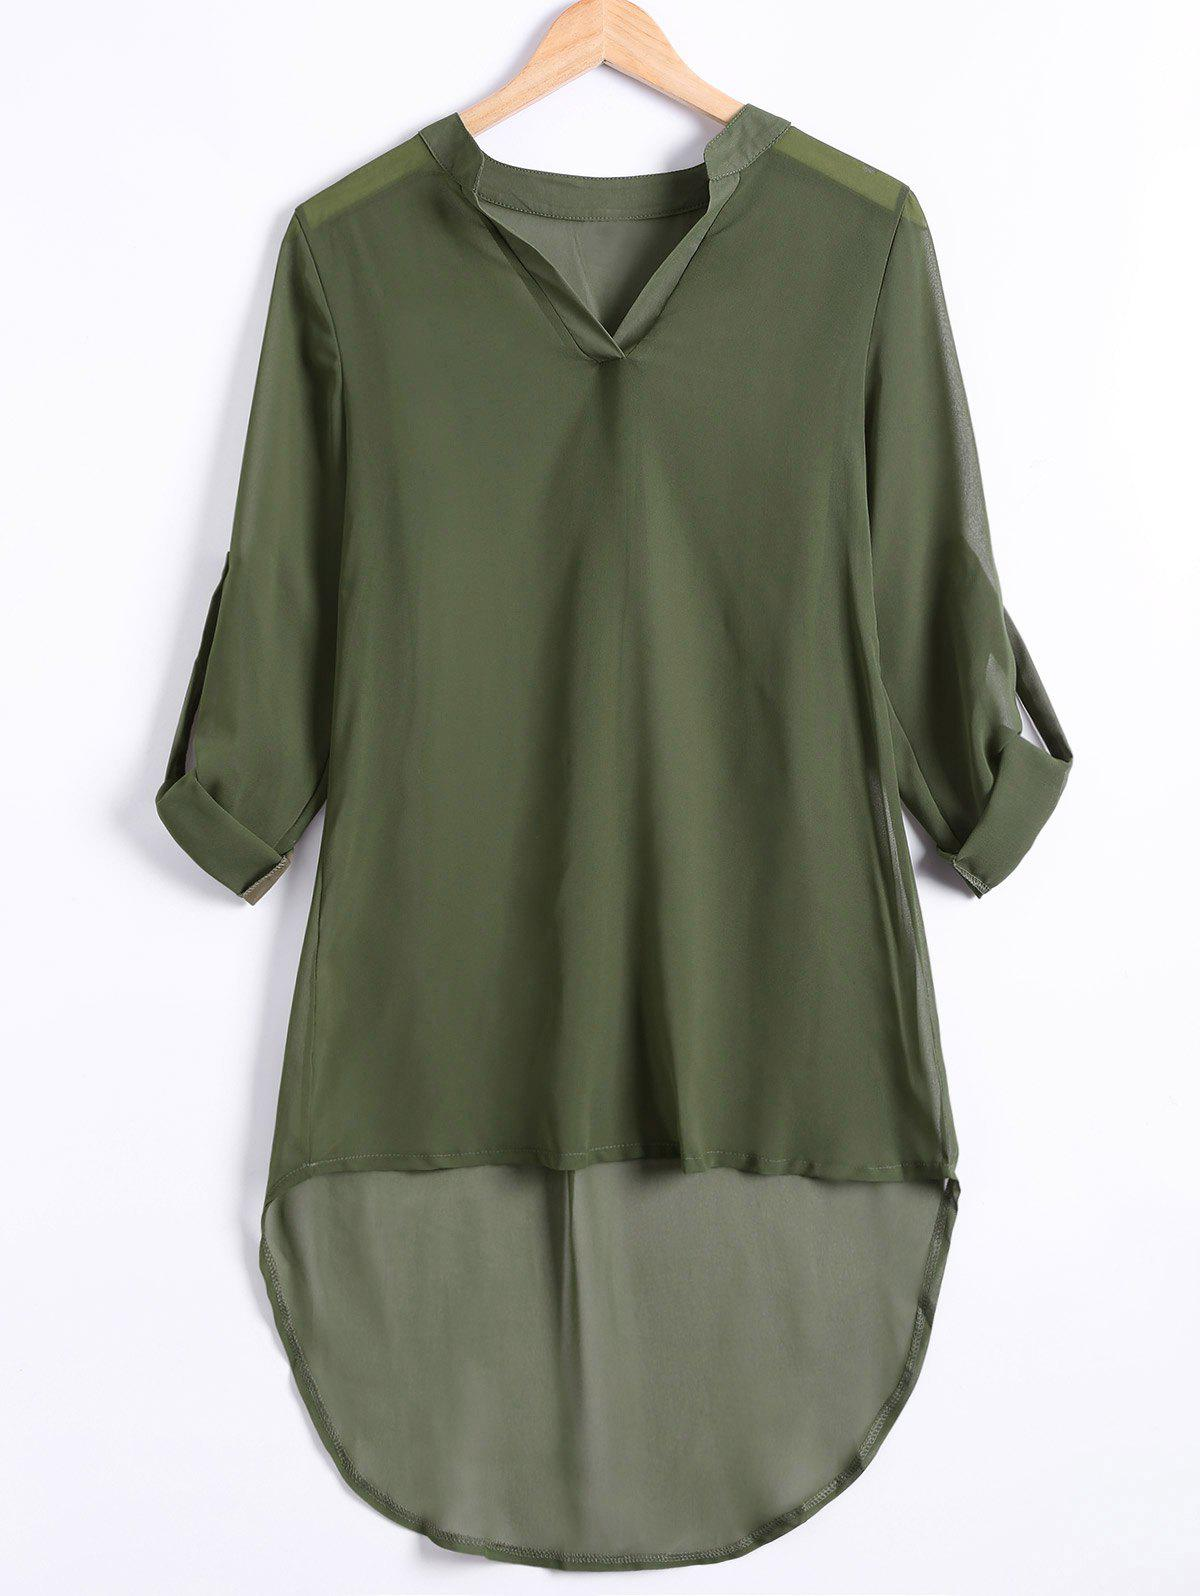 Hemming Sleeves Asymmetric Loose Chiffon DressWomen<br><br><br>Size: S<br>Color: ARMY GREEN